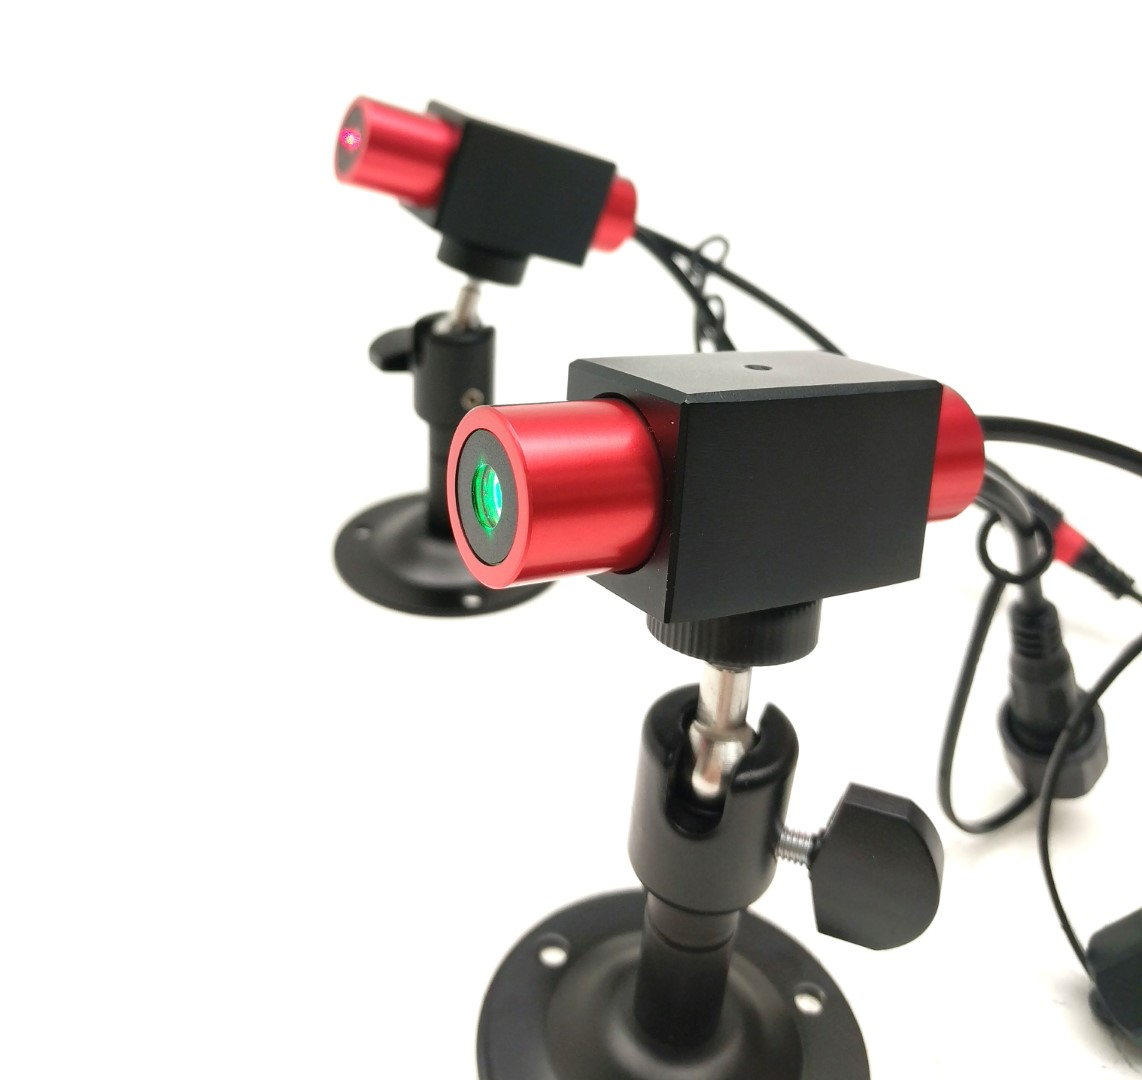 5 mW 635 nm Red Premium Structured Cross Laser, 25° fan angle, adjustable focus, TTL+, Sealed IP67